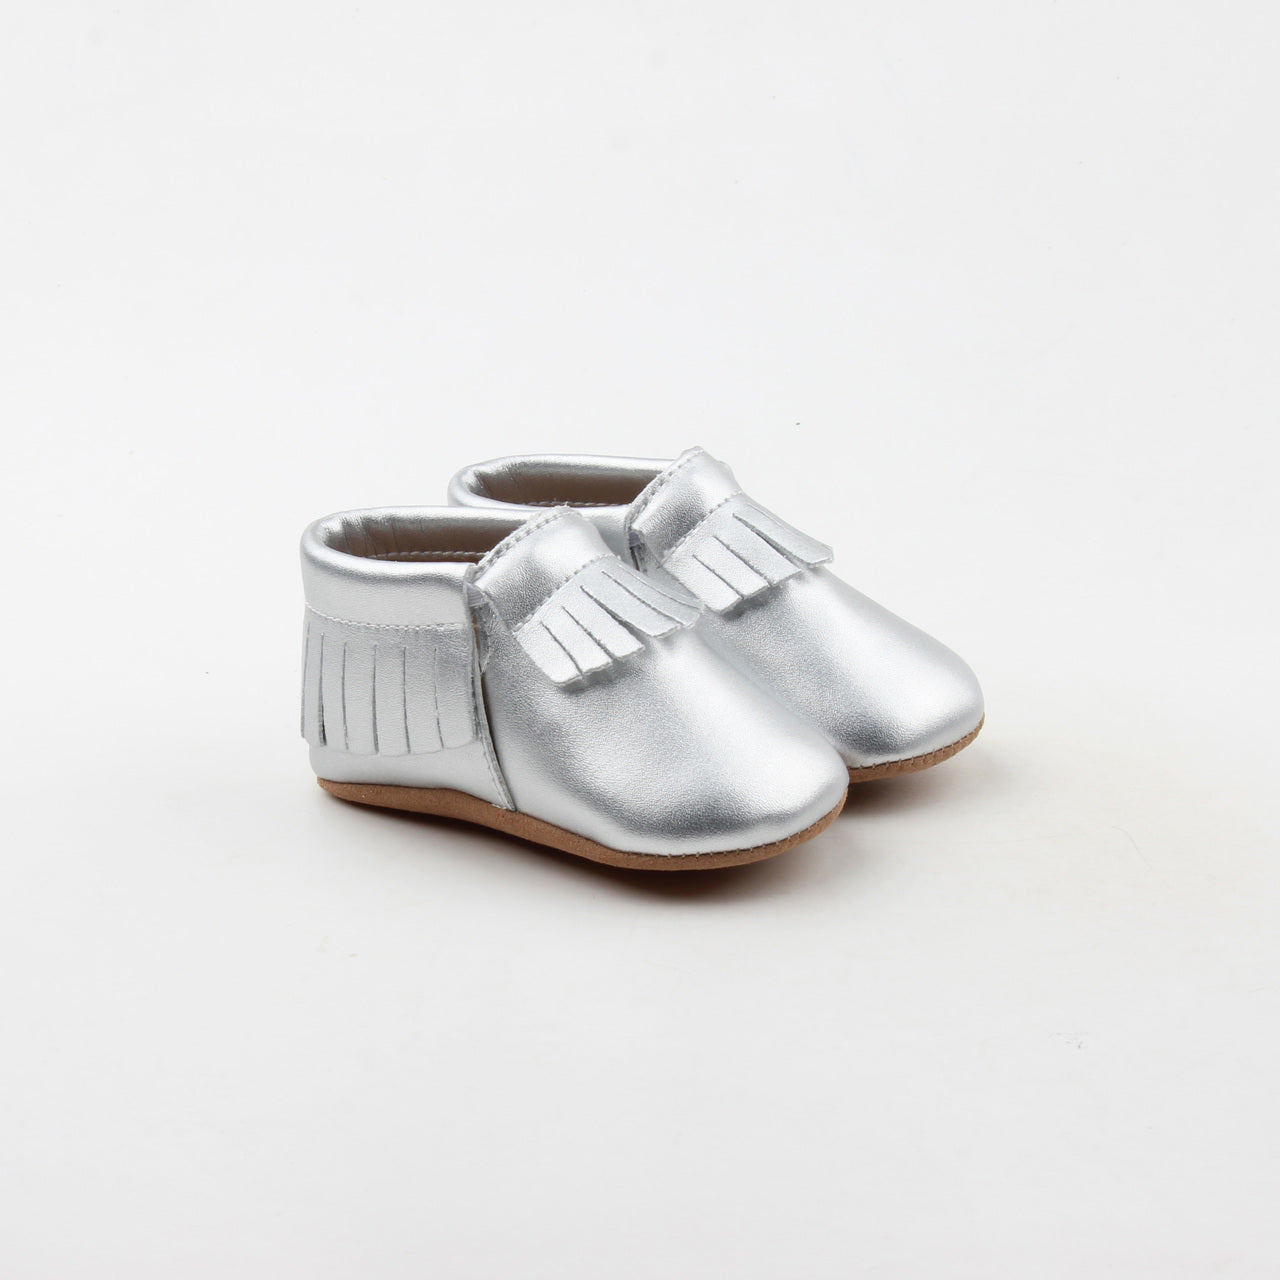 Twinkling Silver Moccasins